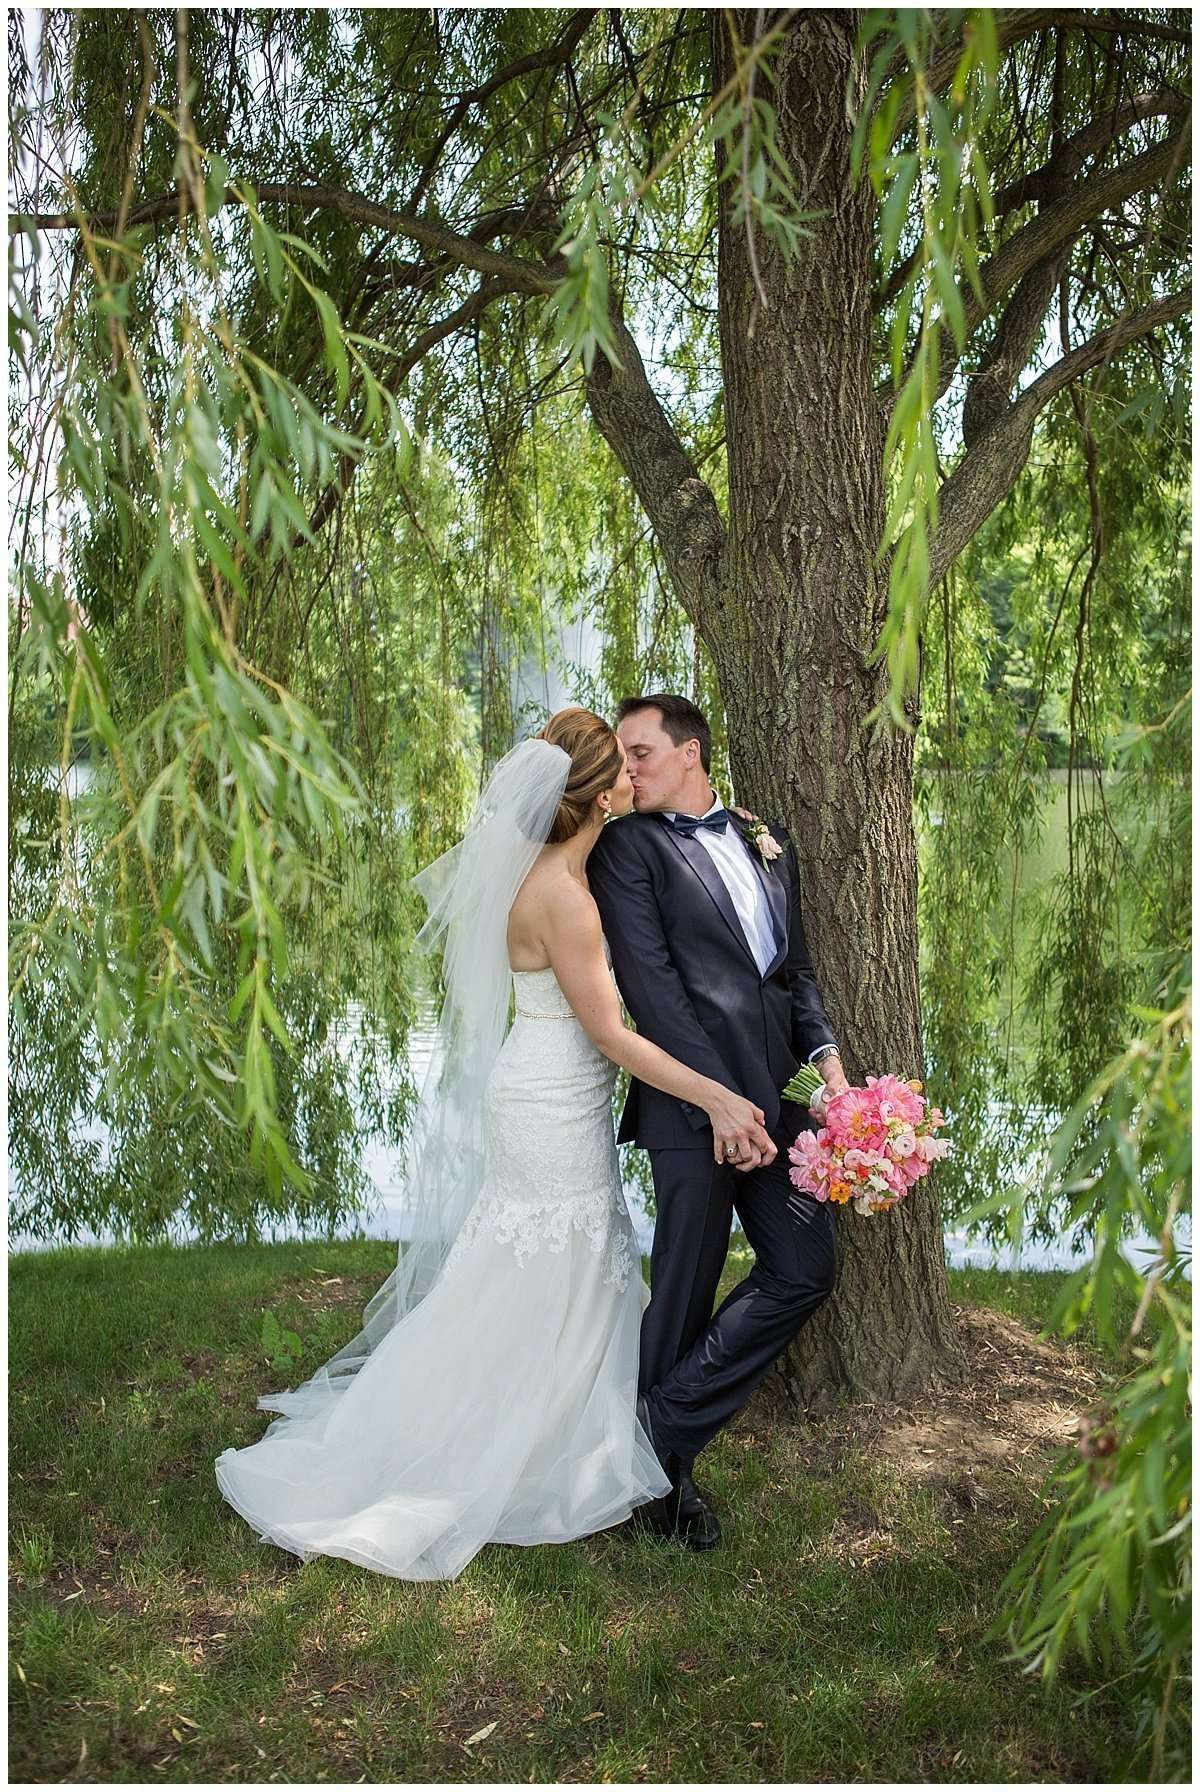 Kim & Lee | A Summer Wedding at Brookside Country Club 60